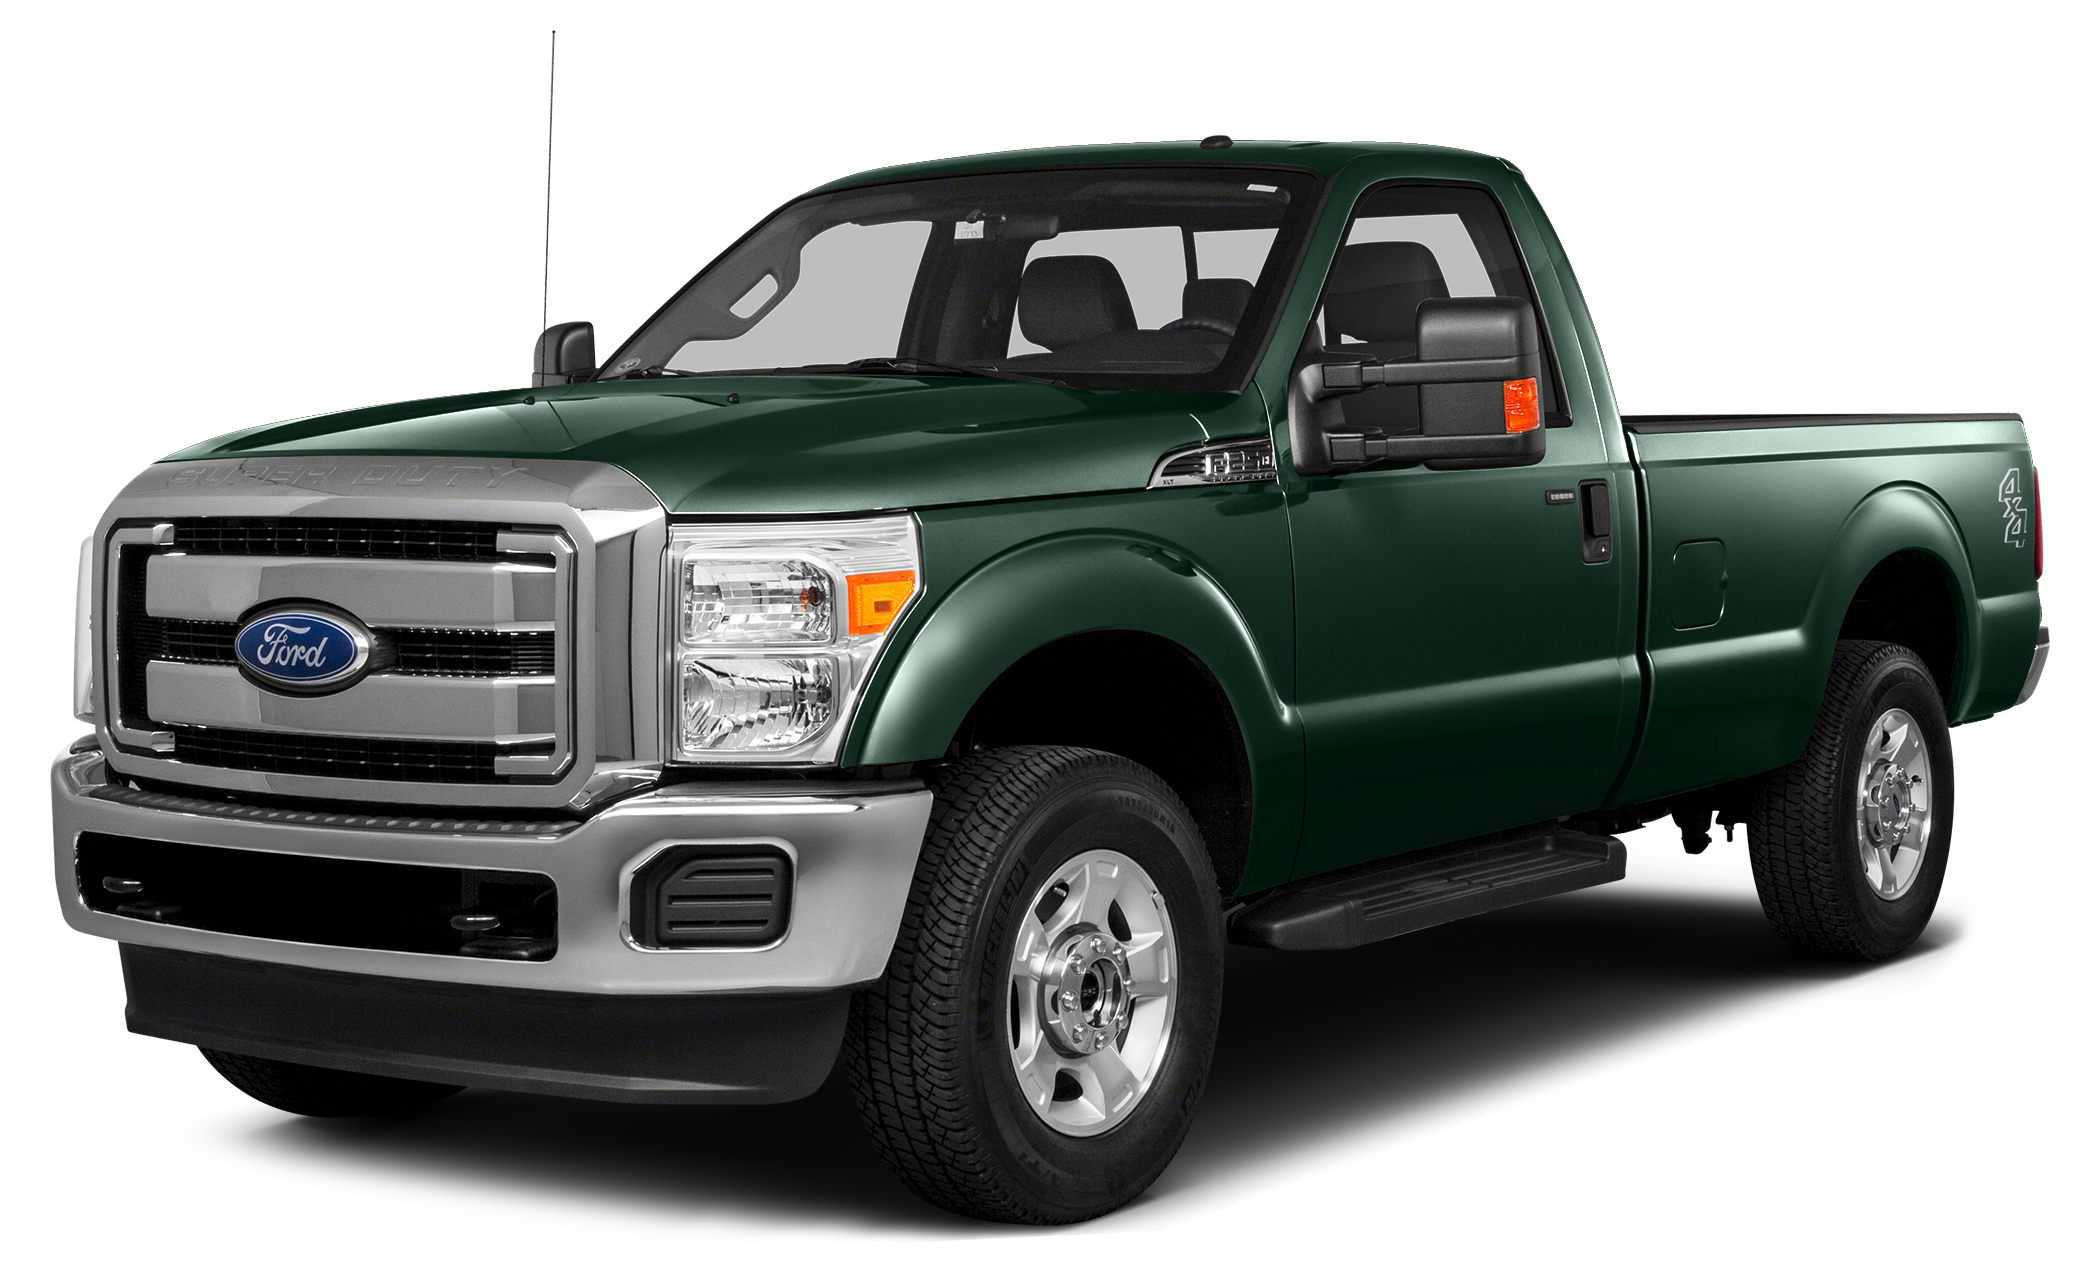 2016 ford f 250 for sale in westbrook me 1ftbf2b68geb01434. Black Bedroom Furniture Sets. Home Design Ideas